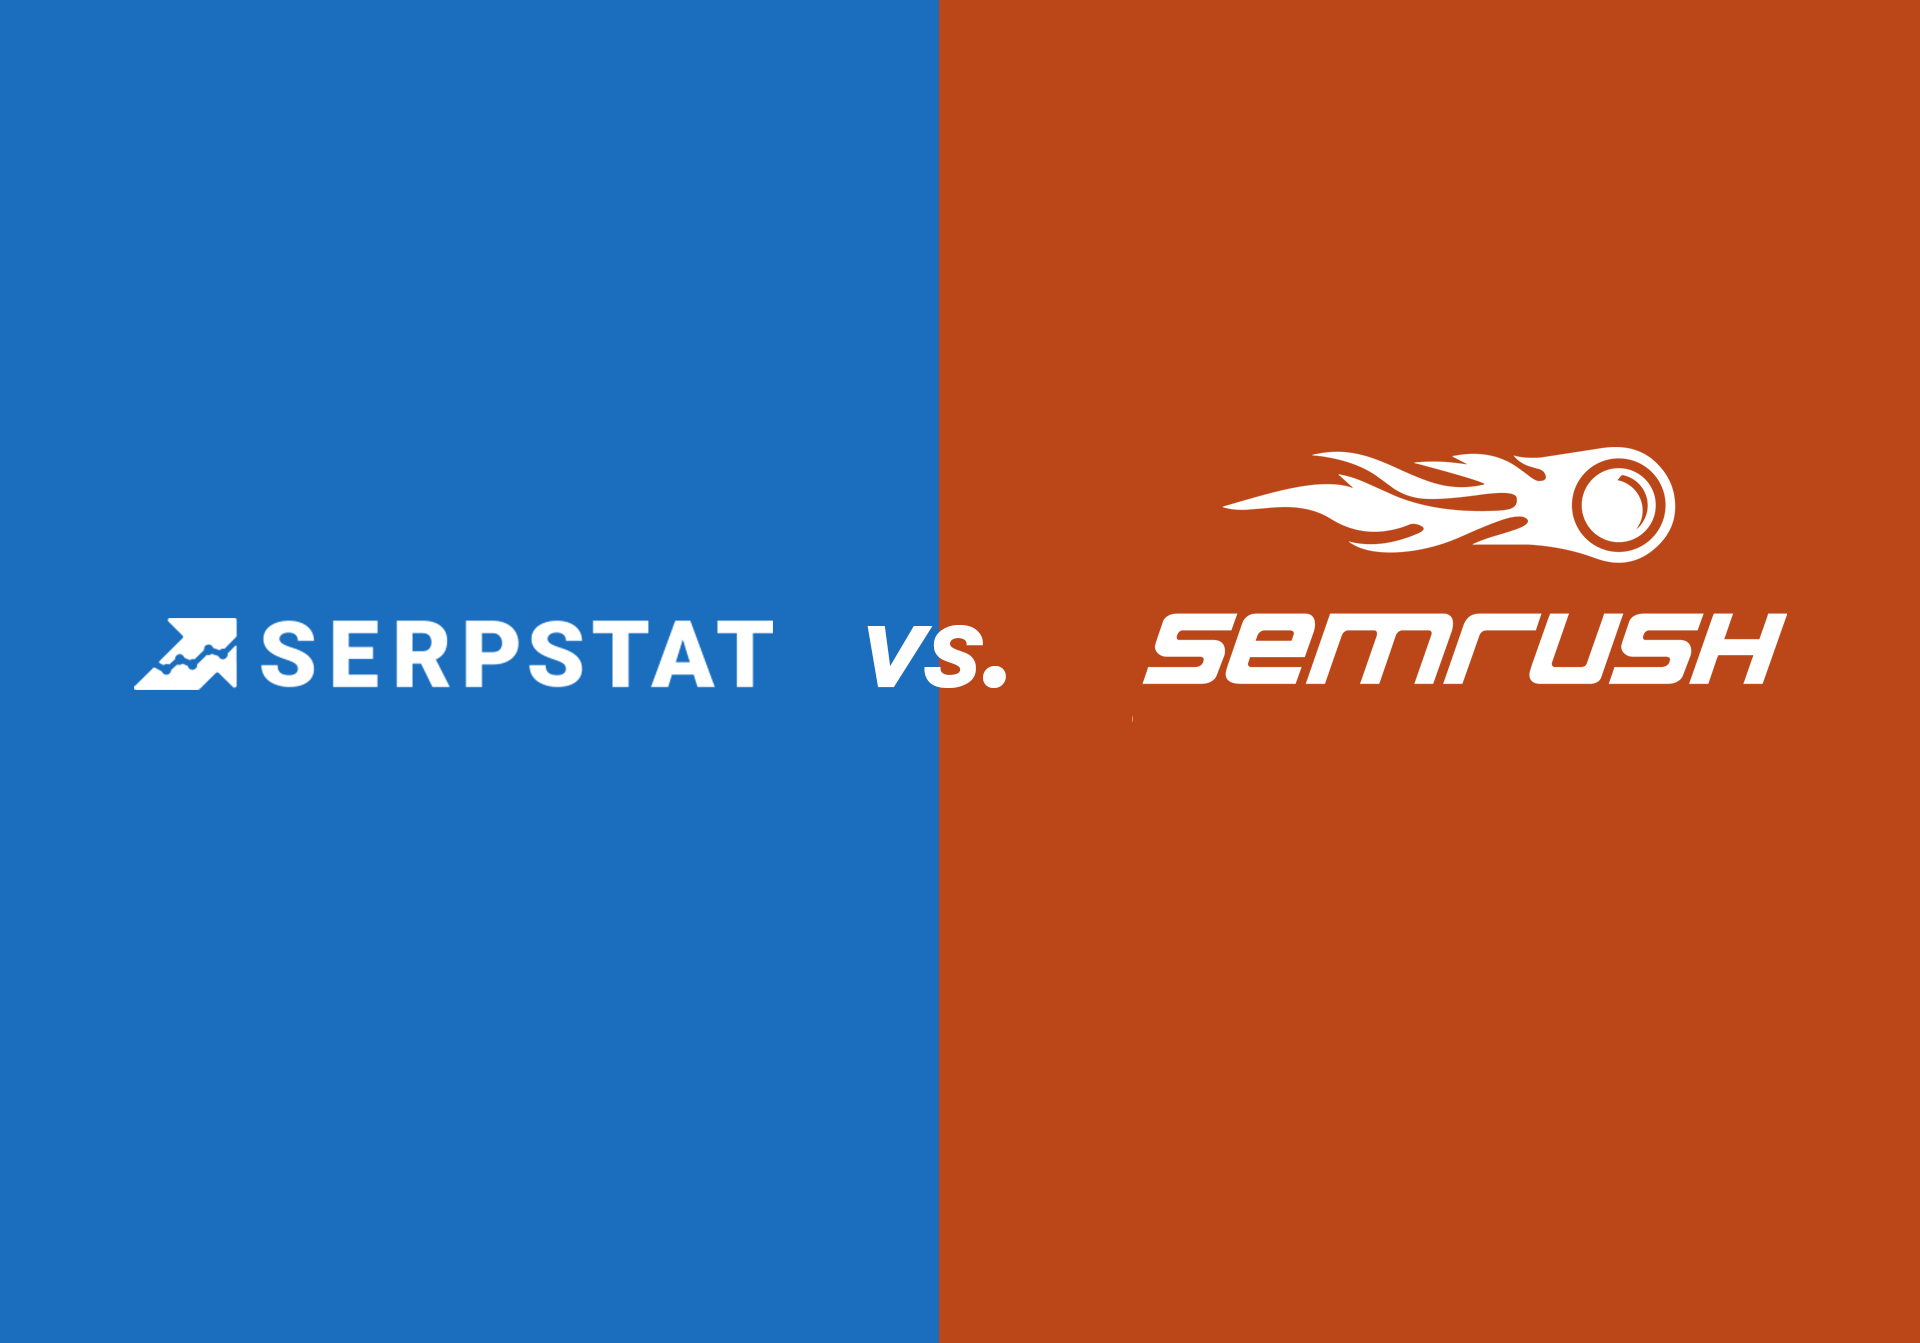 25 Percent Off Voucher Code Printable Semrush April 2020